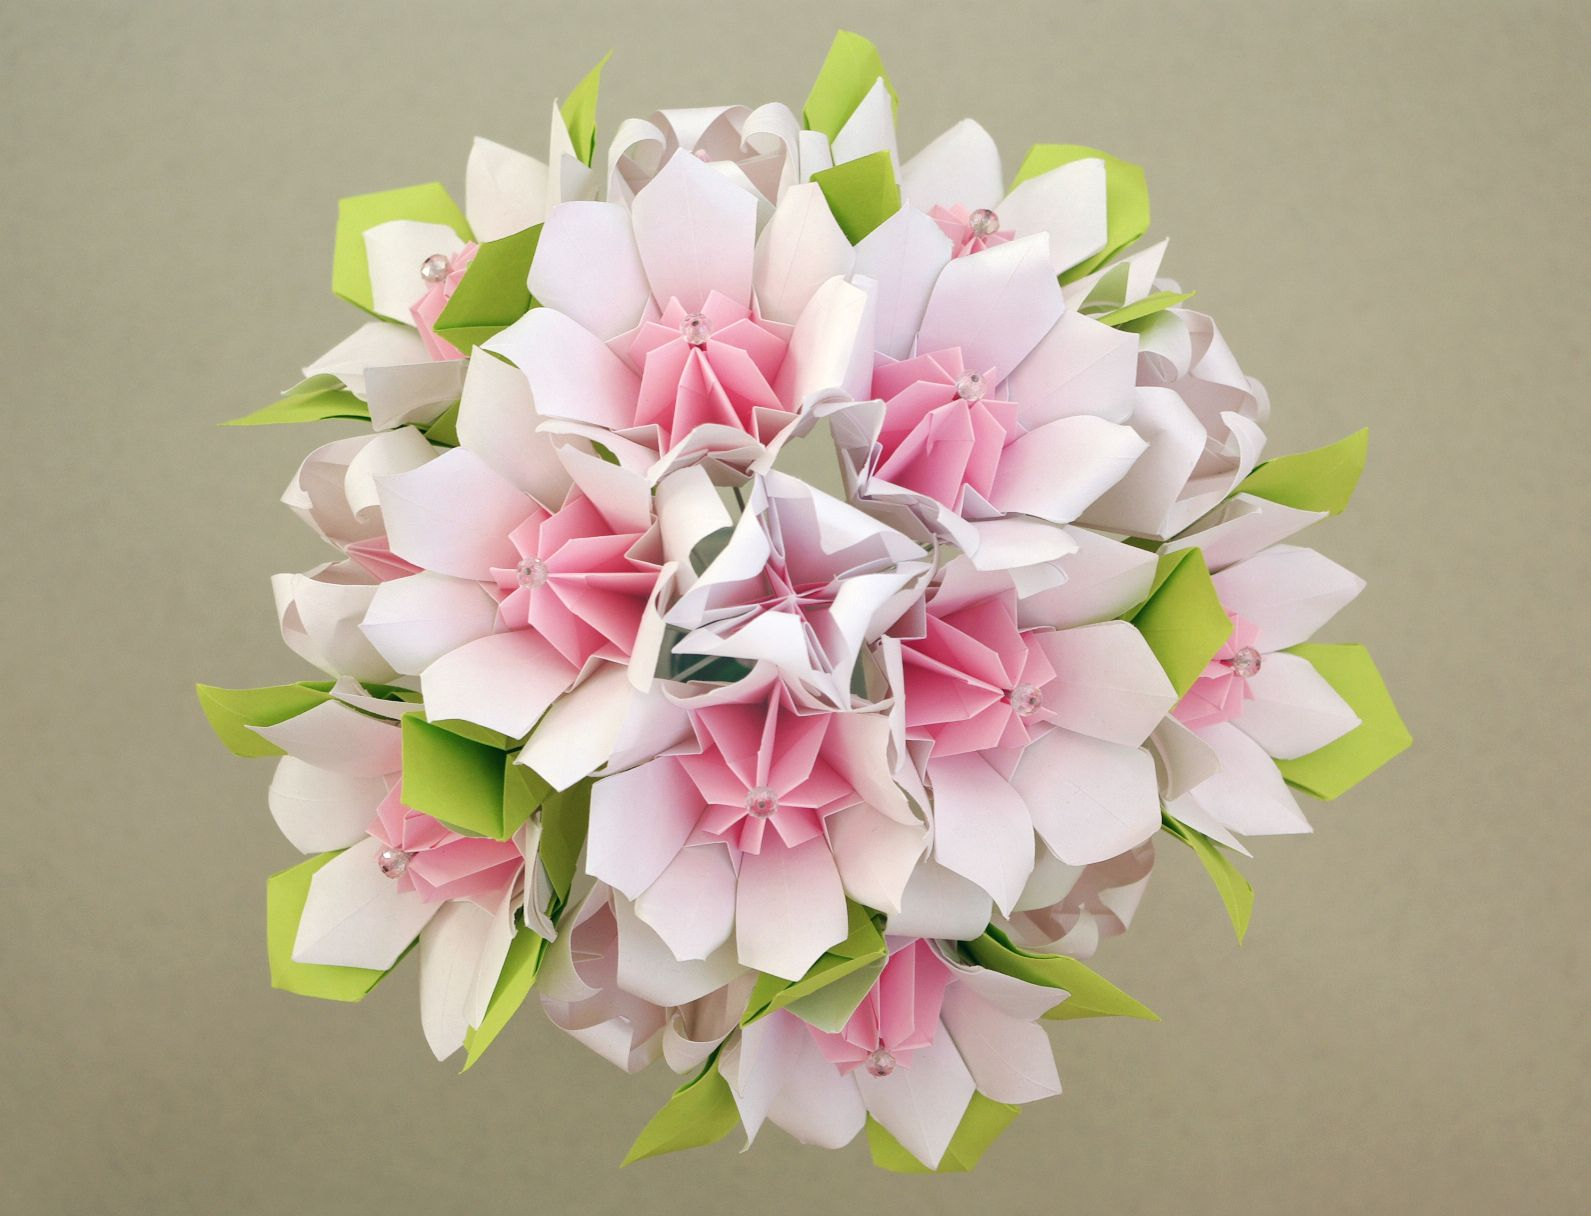 Origami Wedding Bouquet White Pink Green Handmade Paper Flowers